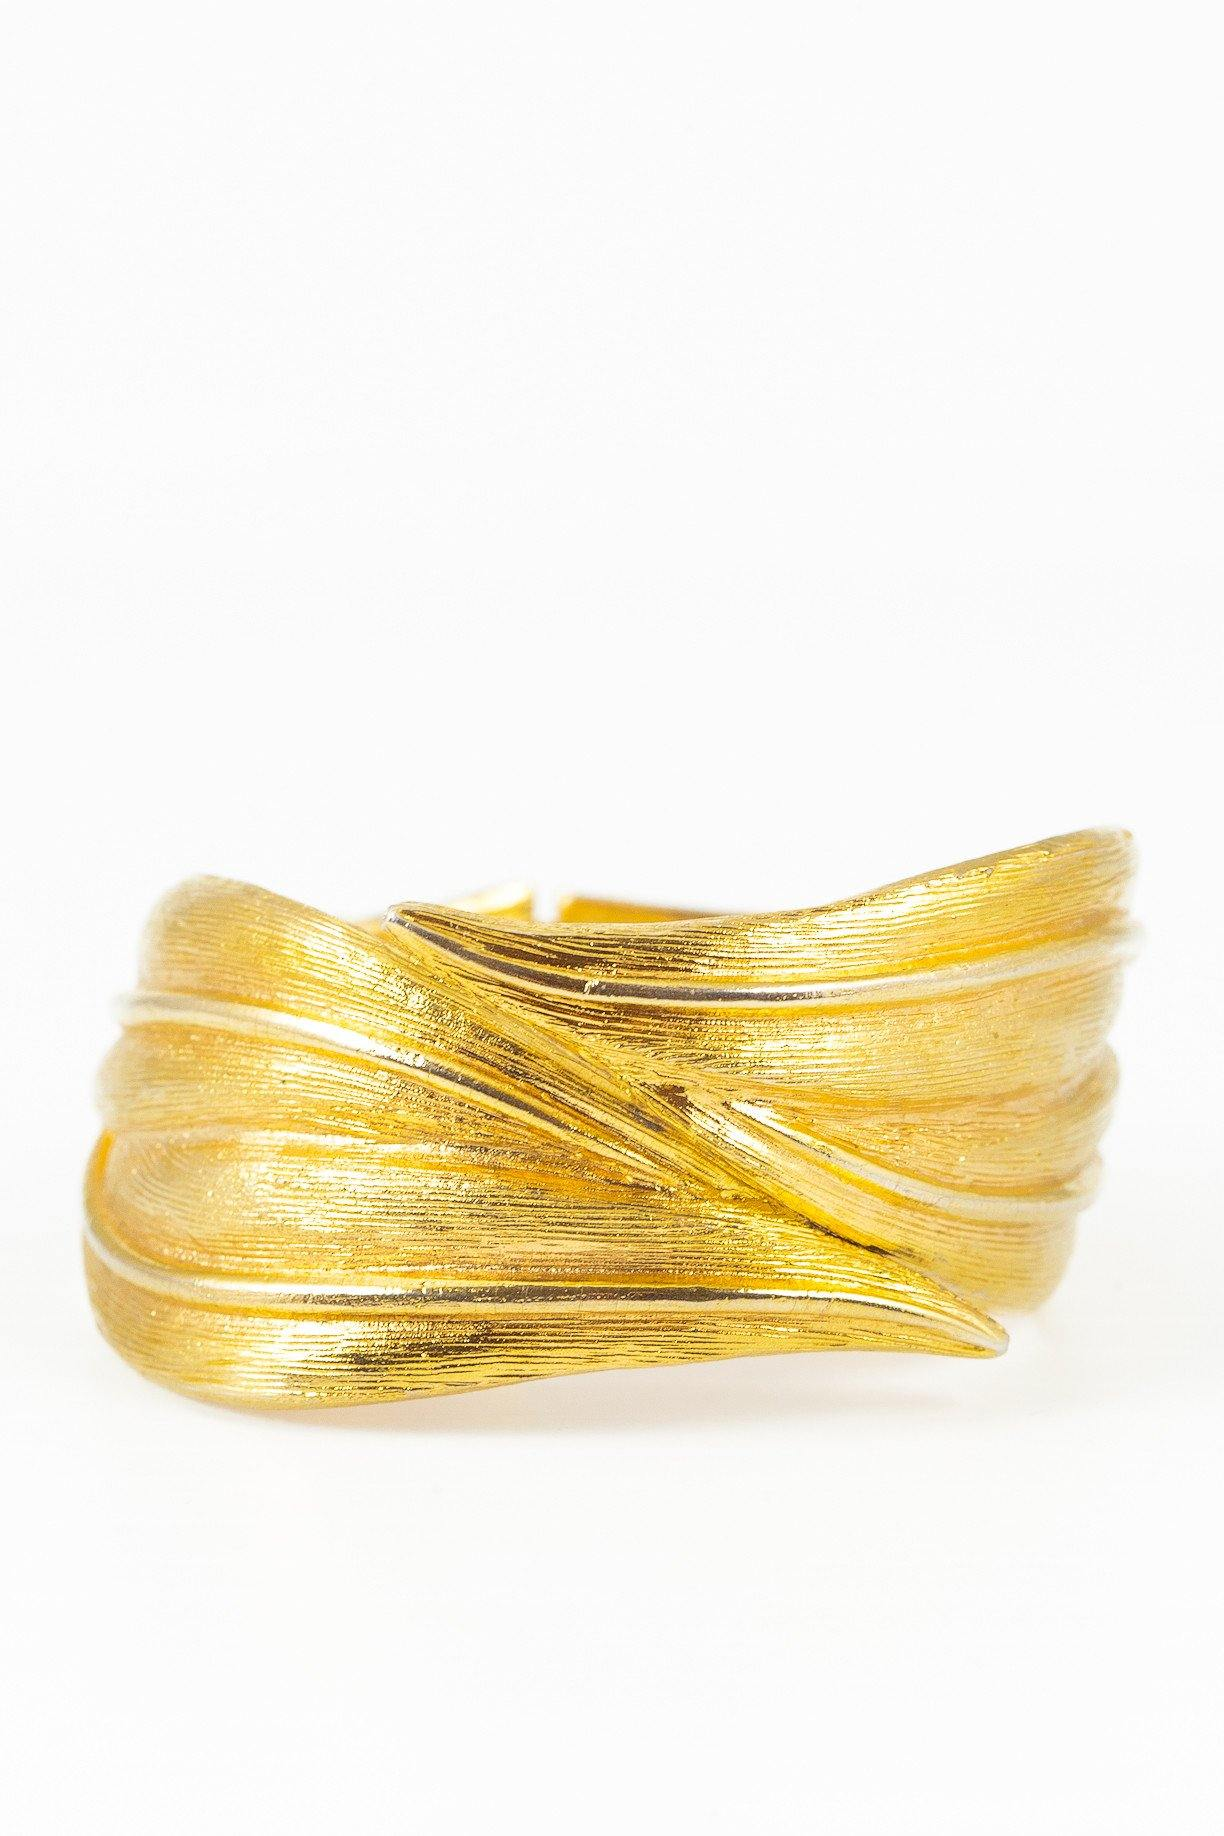 50's__Julio Marsella__Leaf Wrap Bracelet